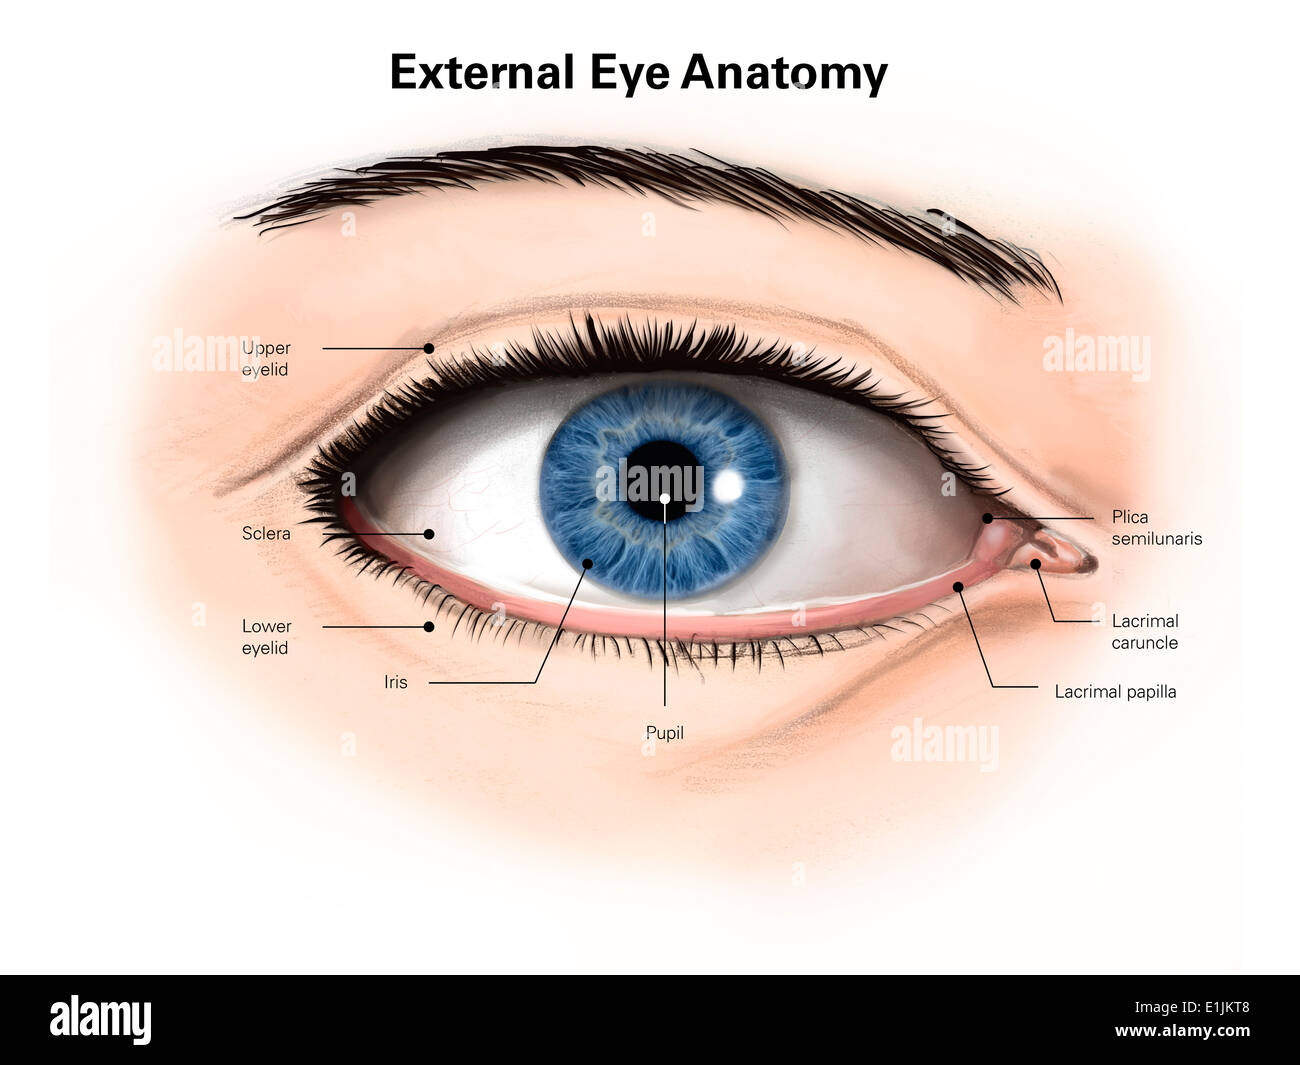 External Anatomy Of The Human Eye With Labels Stock Photo Alamy